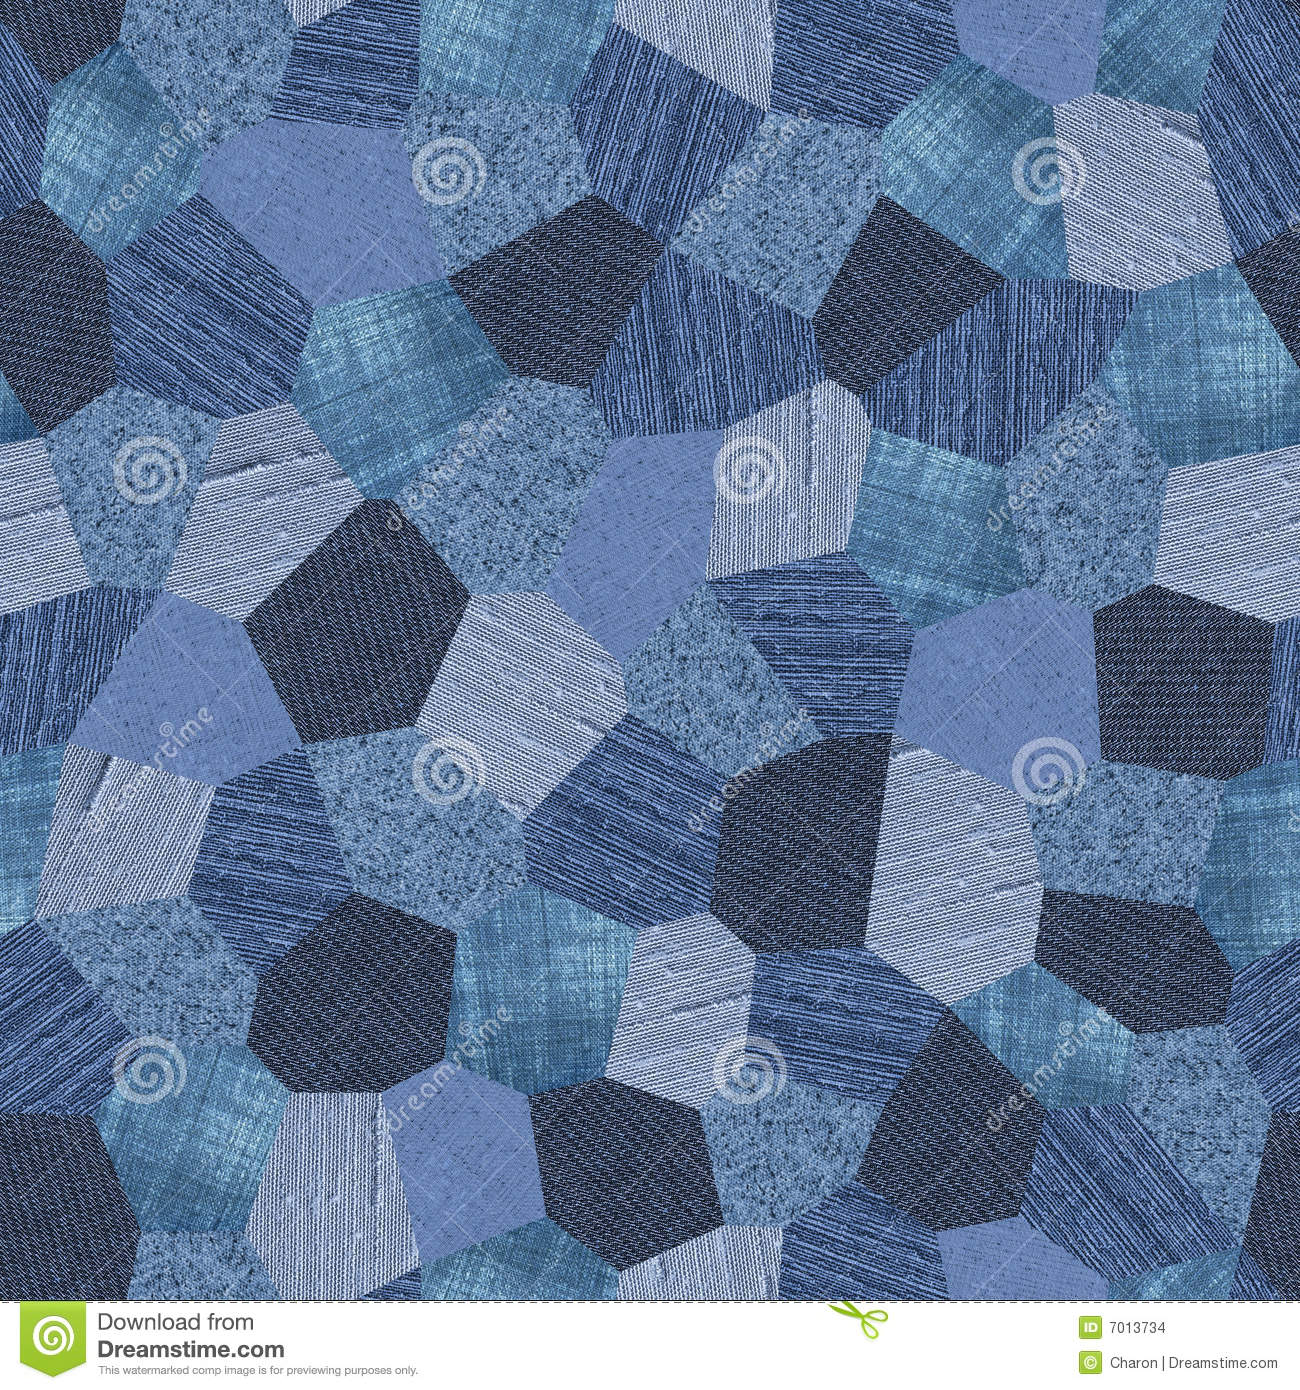 Denim Pattern Collage Seamless Texture Stock Images - Image: 7013734 African Designs And Patterns